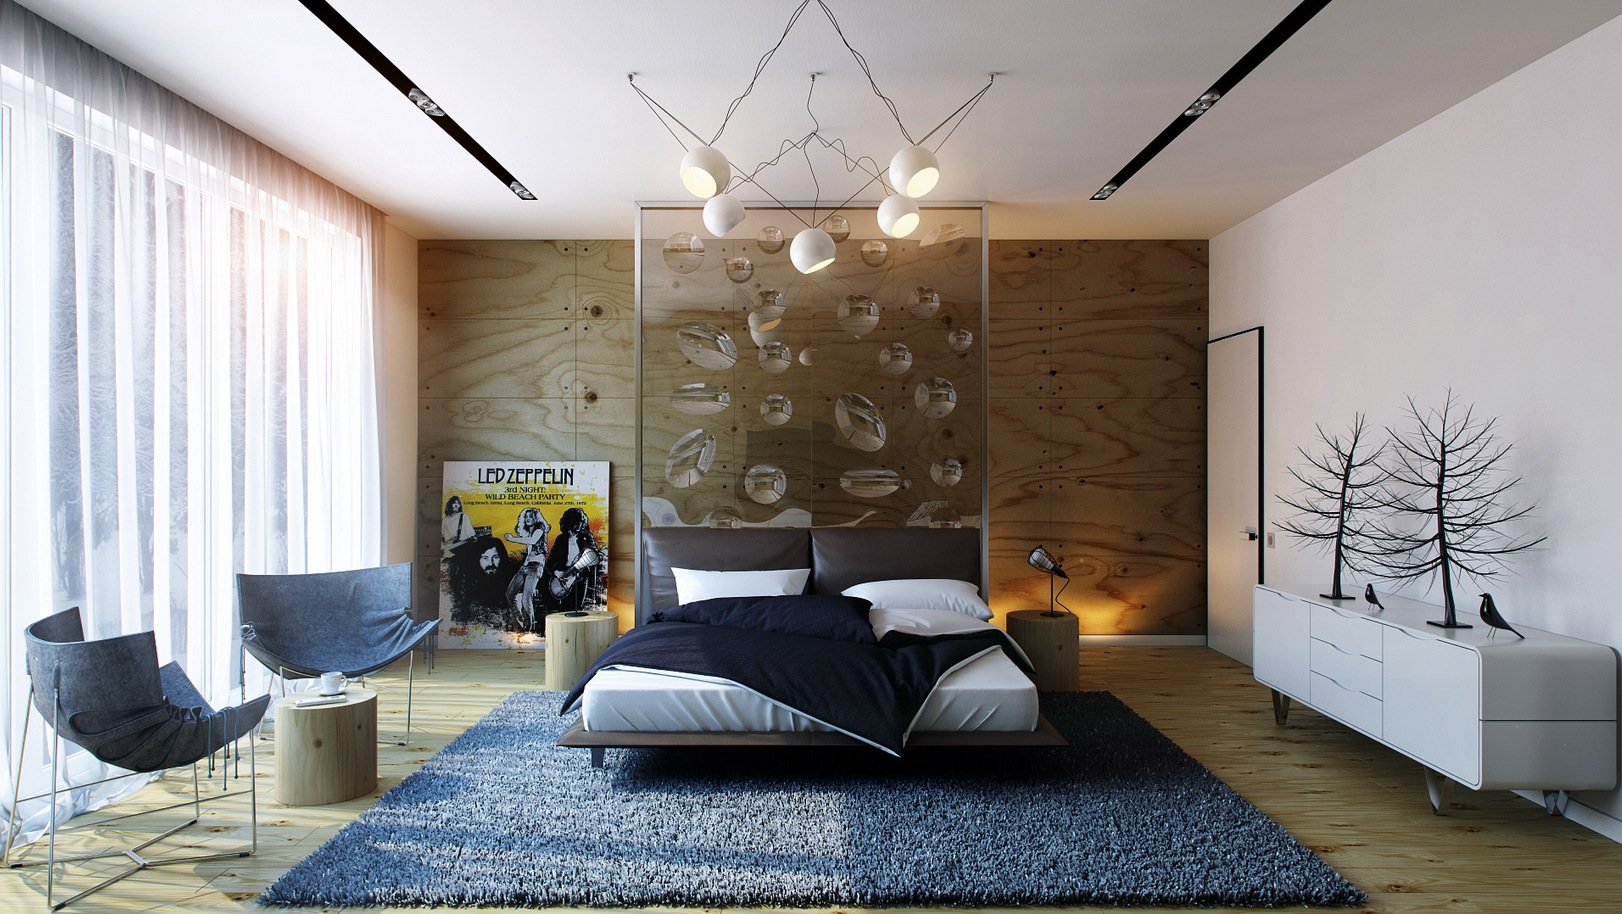 Bedroom wall ideas modern - Bedroom Wall Ideas Modern 1